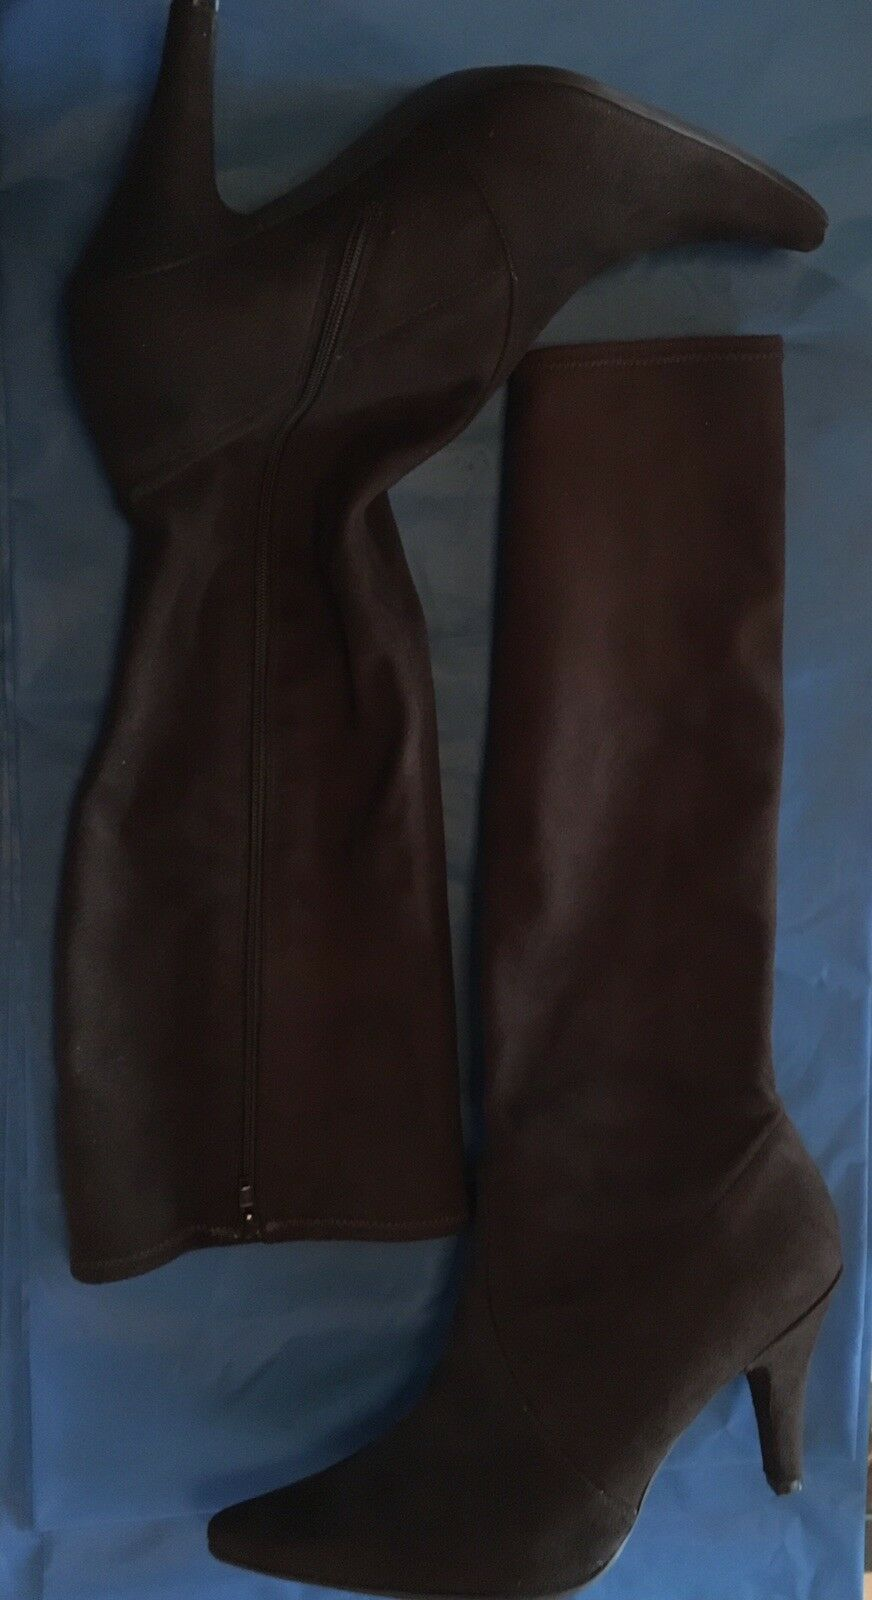 Kenneth Cole REACTION Beautiful Brown Suede Boots, Size 9 US  40EU Never Worn